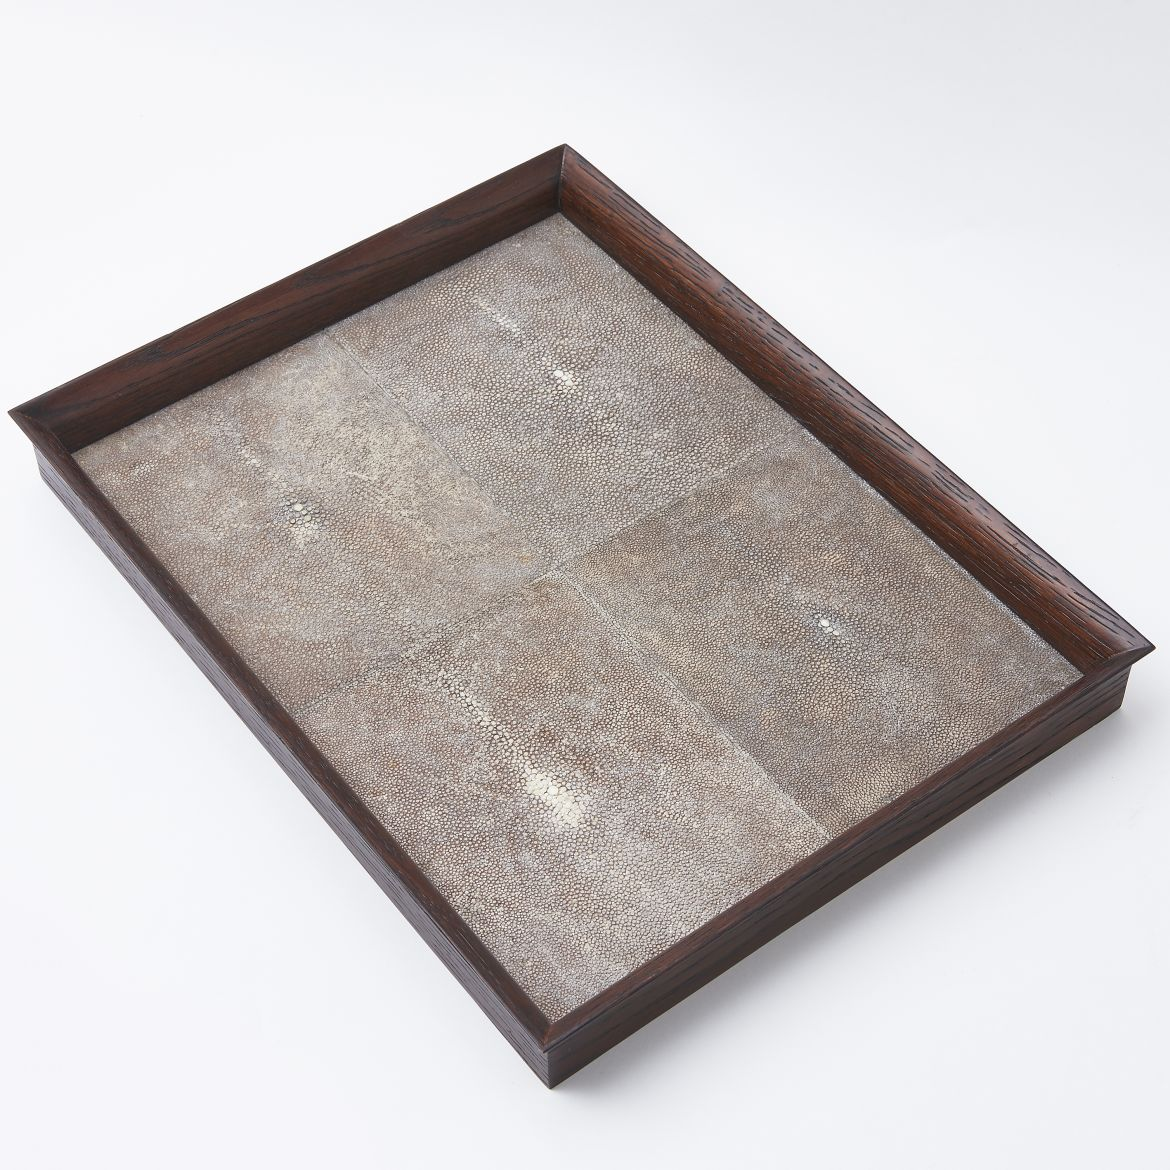 Tray With Shagreen Panels